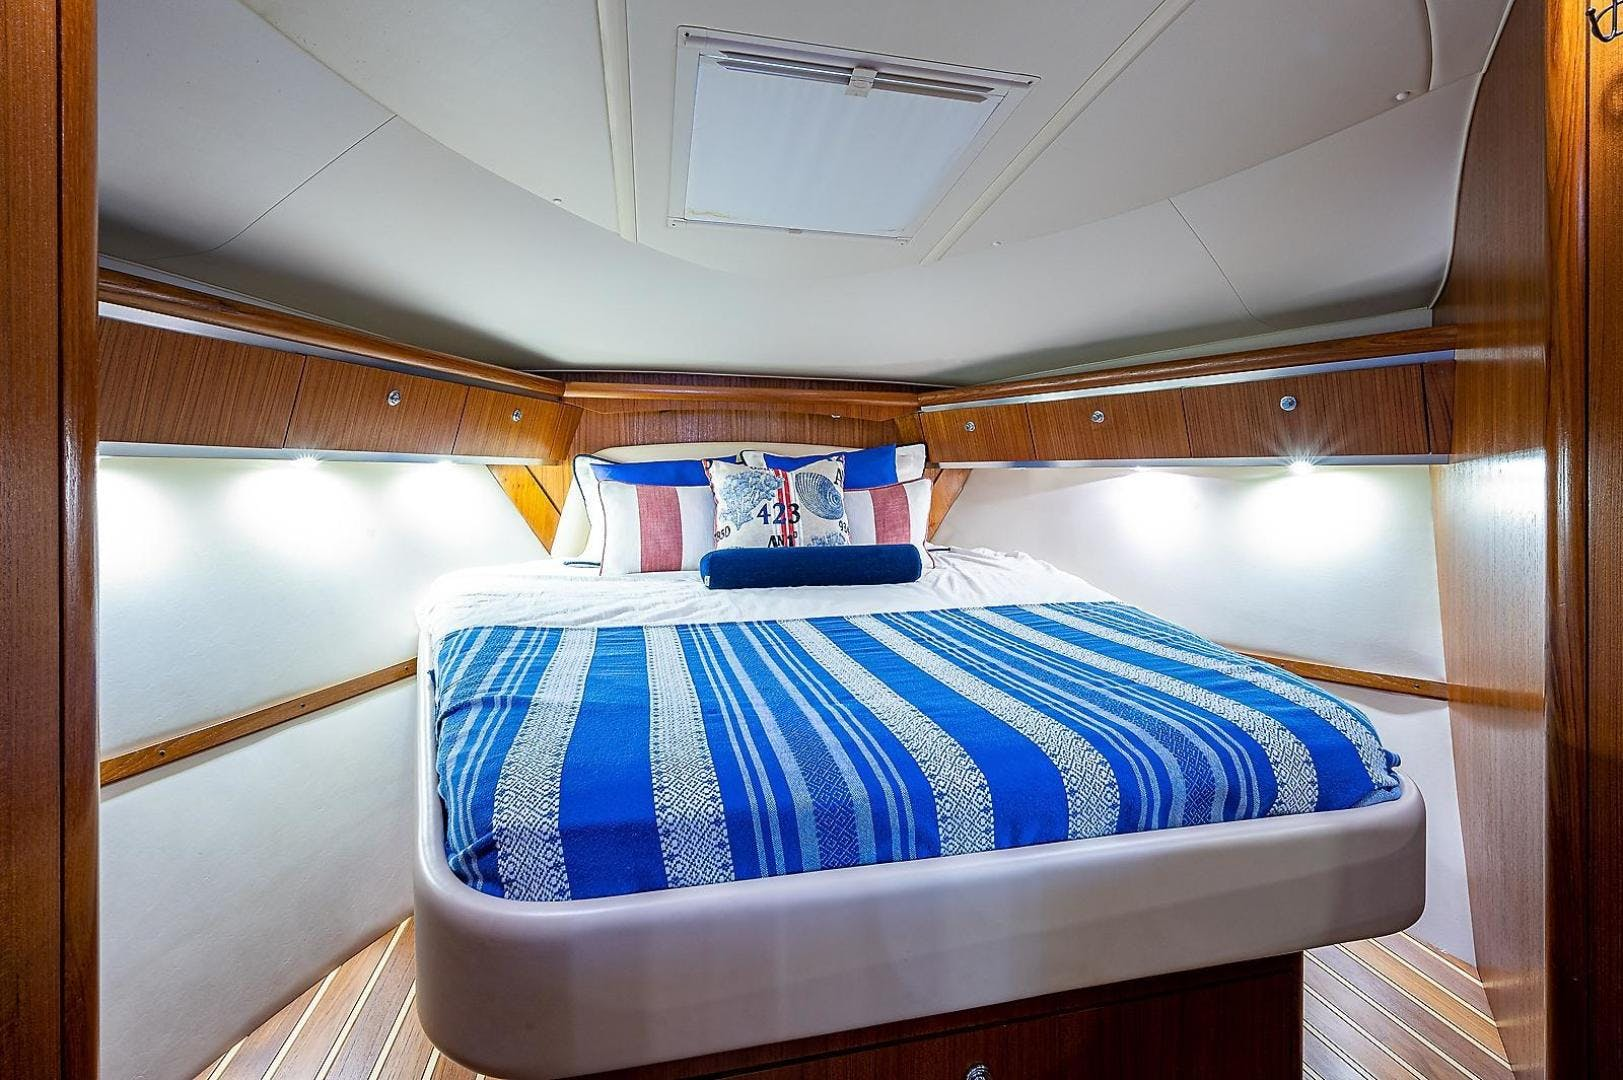 2004 Tiara Yachts 36' 3600 Sovran Lead Explorer | Picture 3 of 39